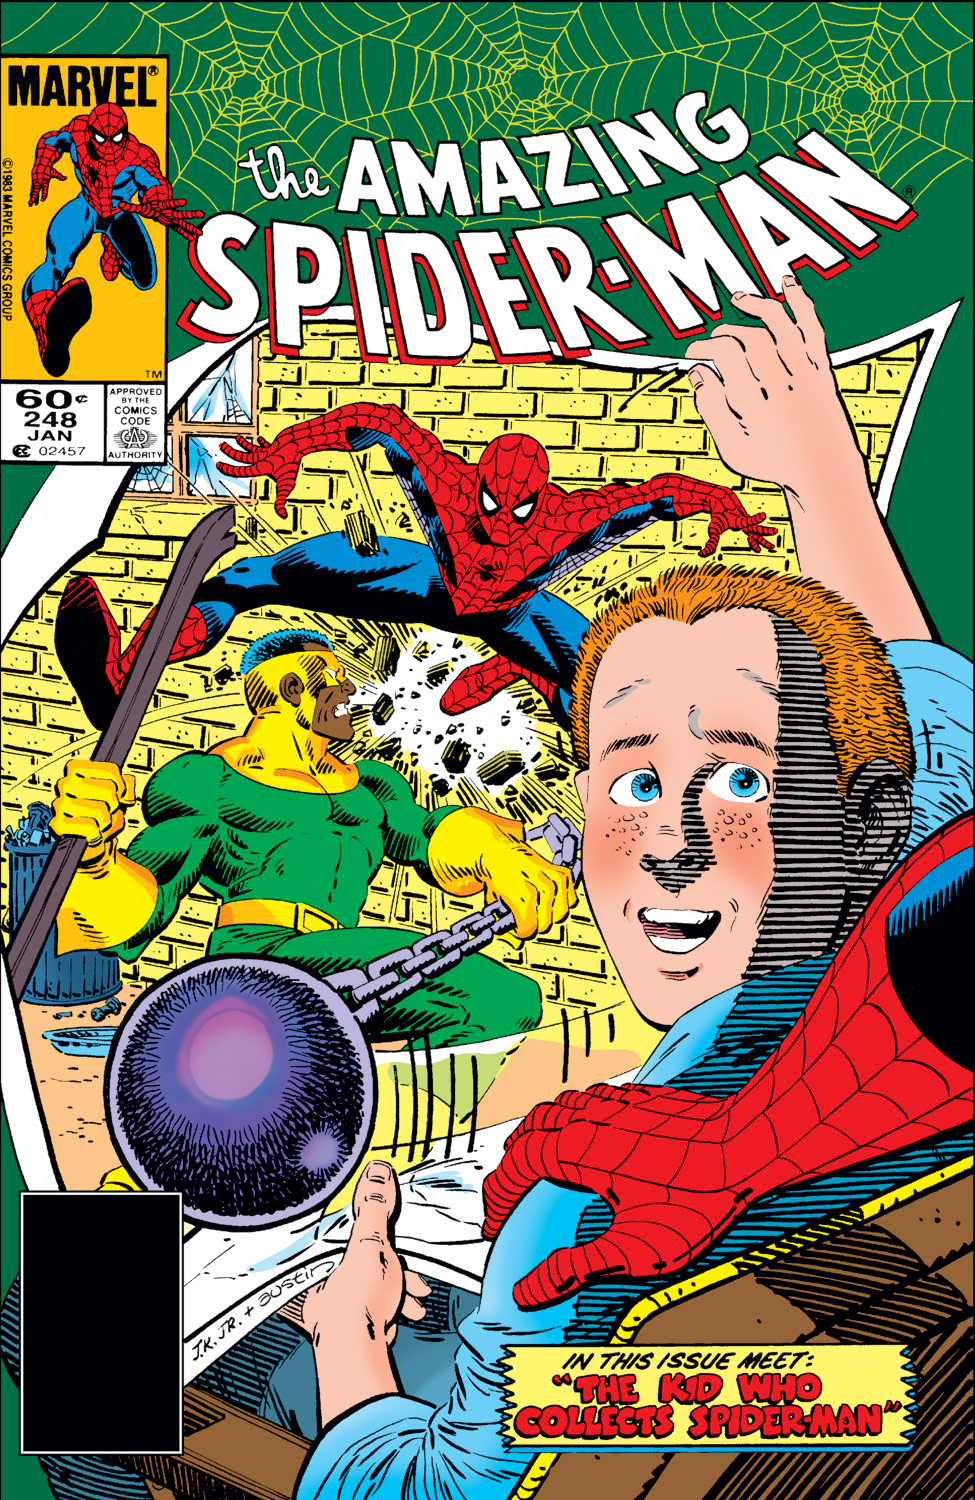 The Amazing Spider-Man (1963) #248